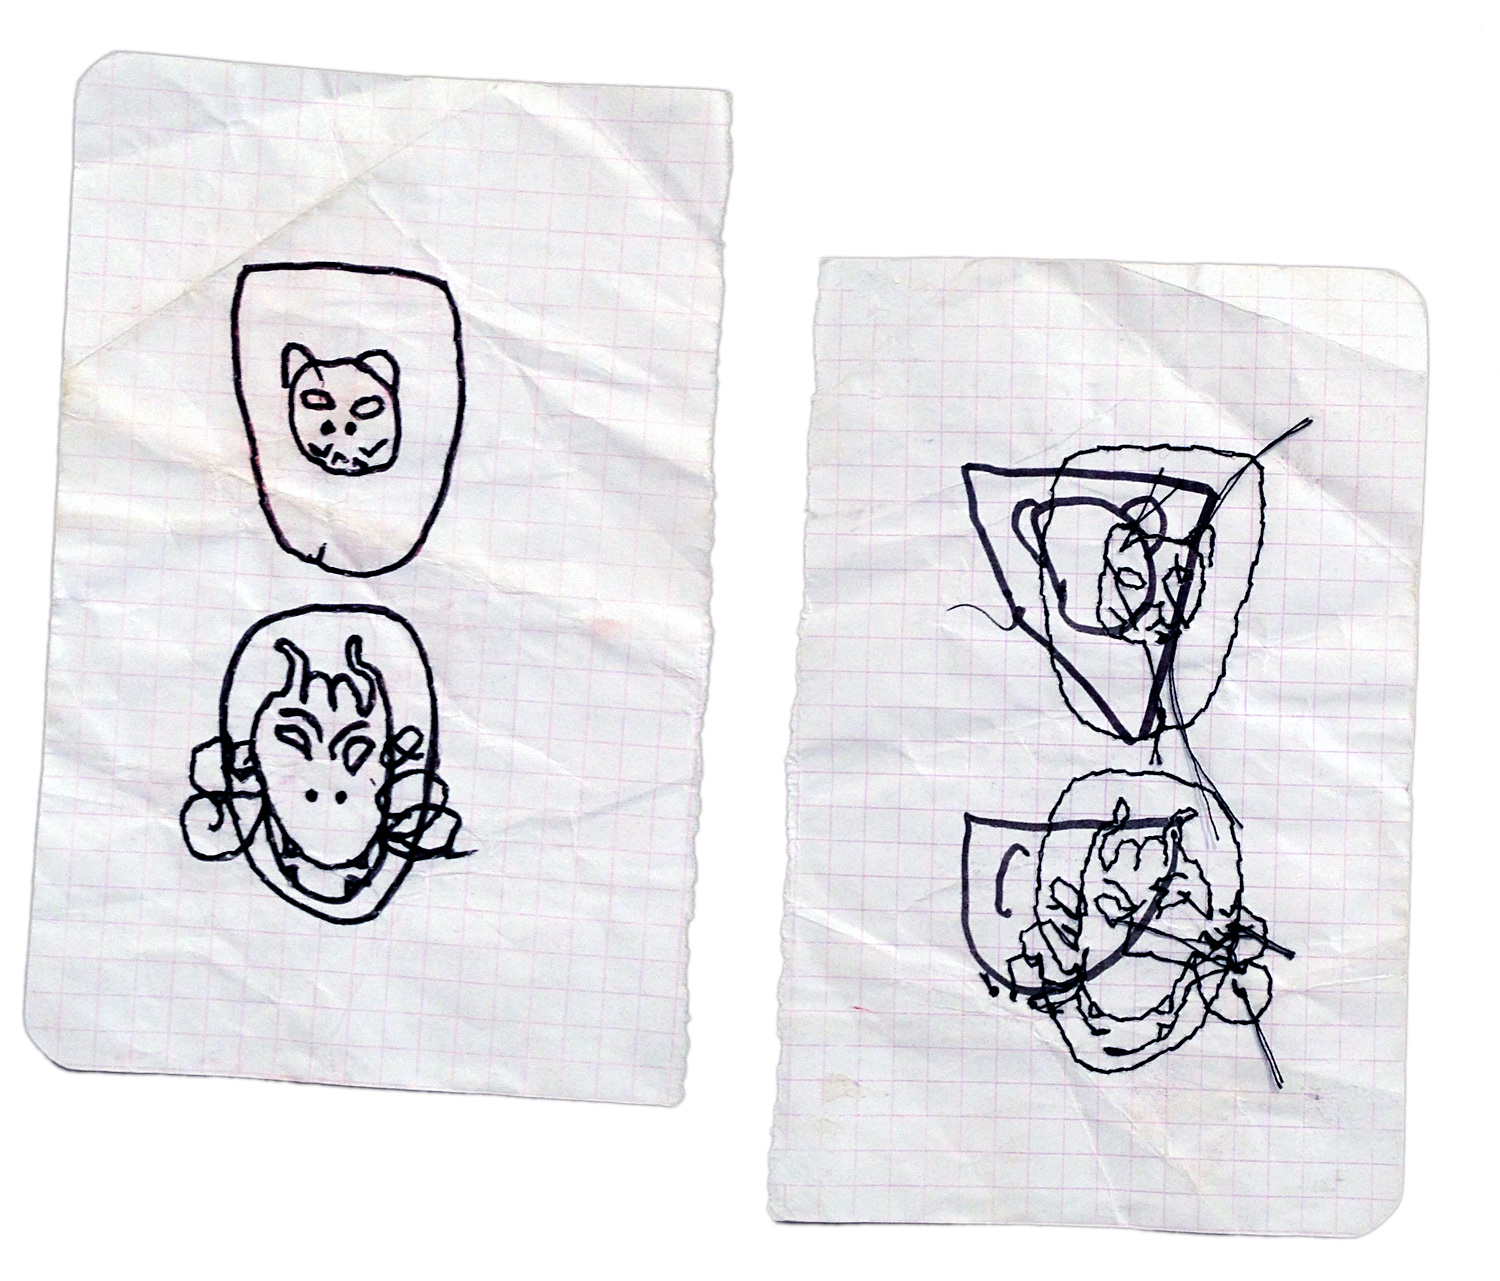 UNTITLED   (front and back)